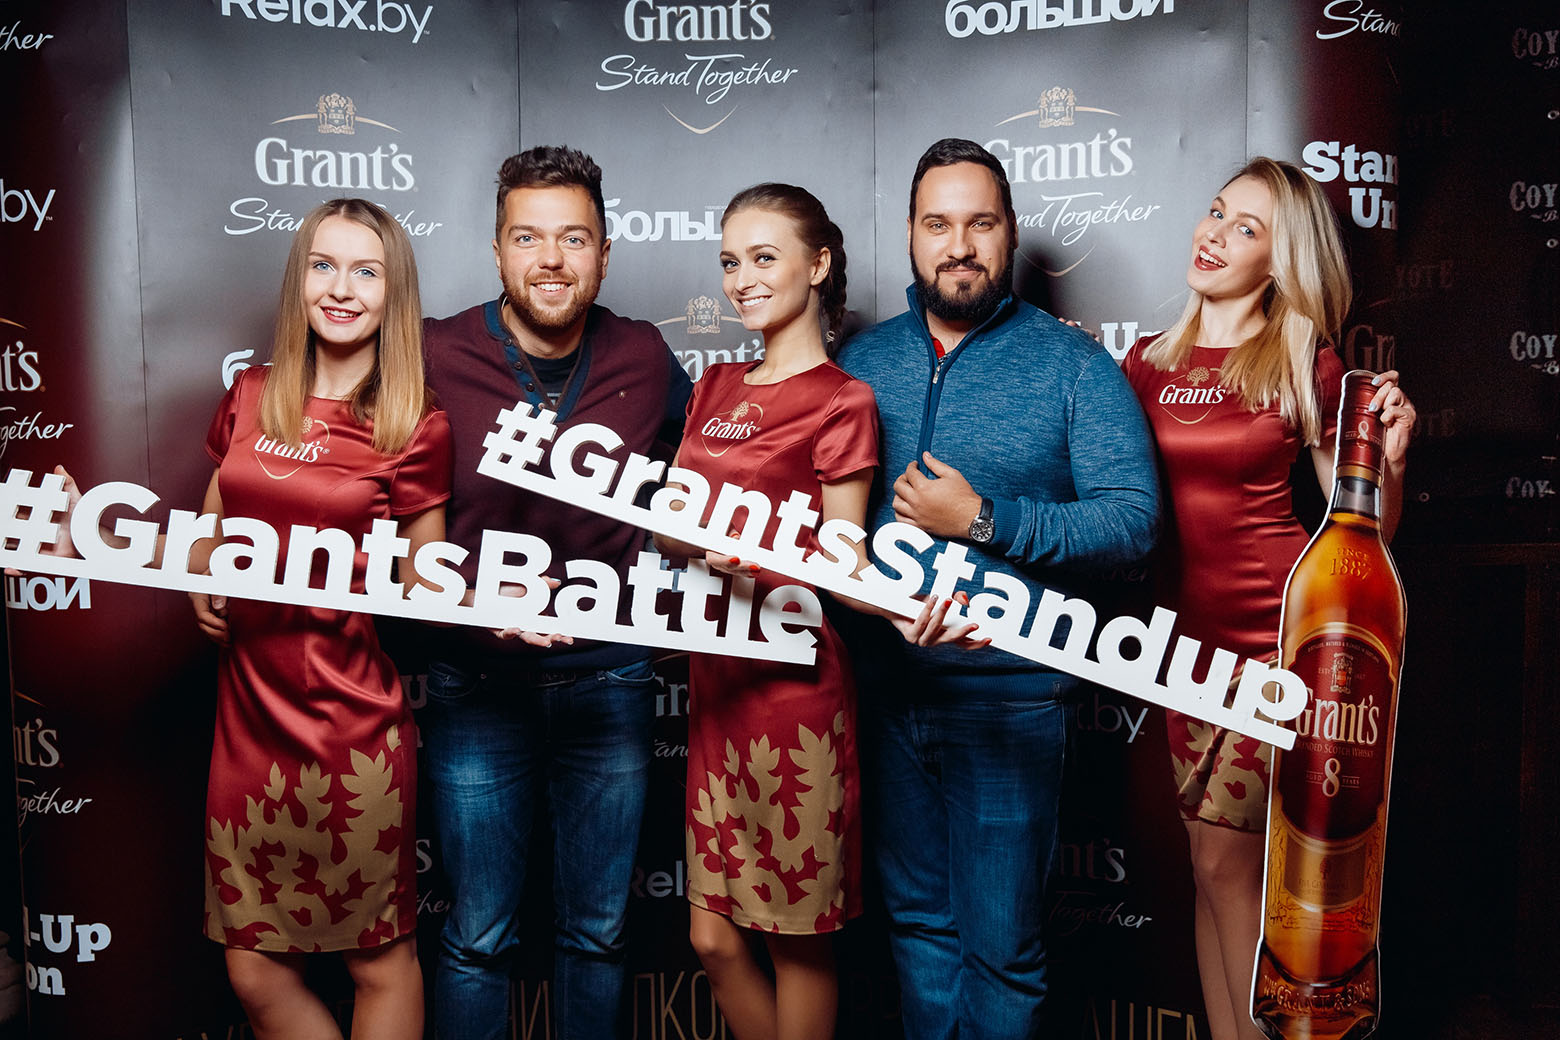 grants-battle-final-nowatermark-20